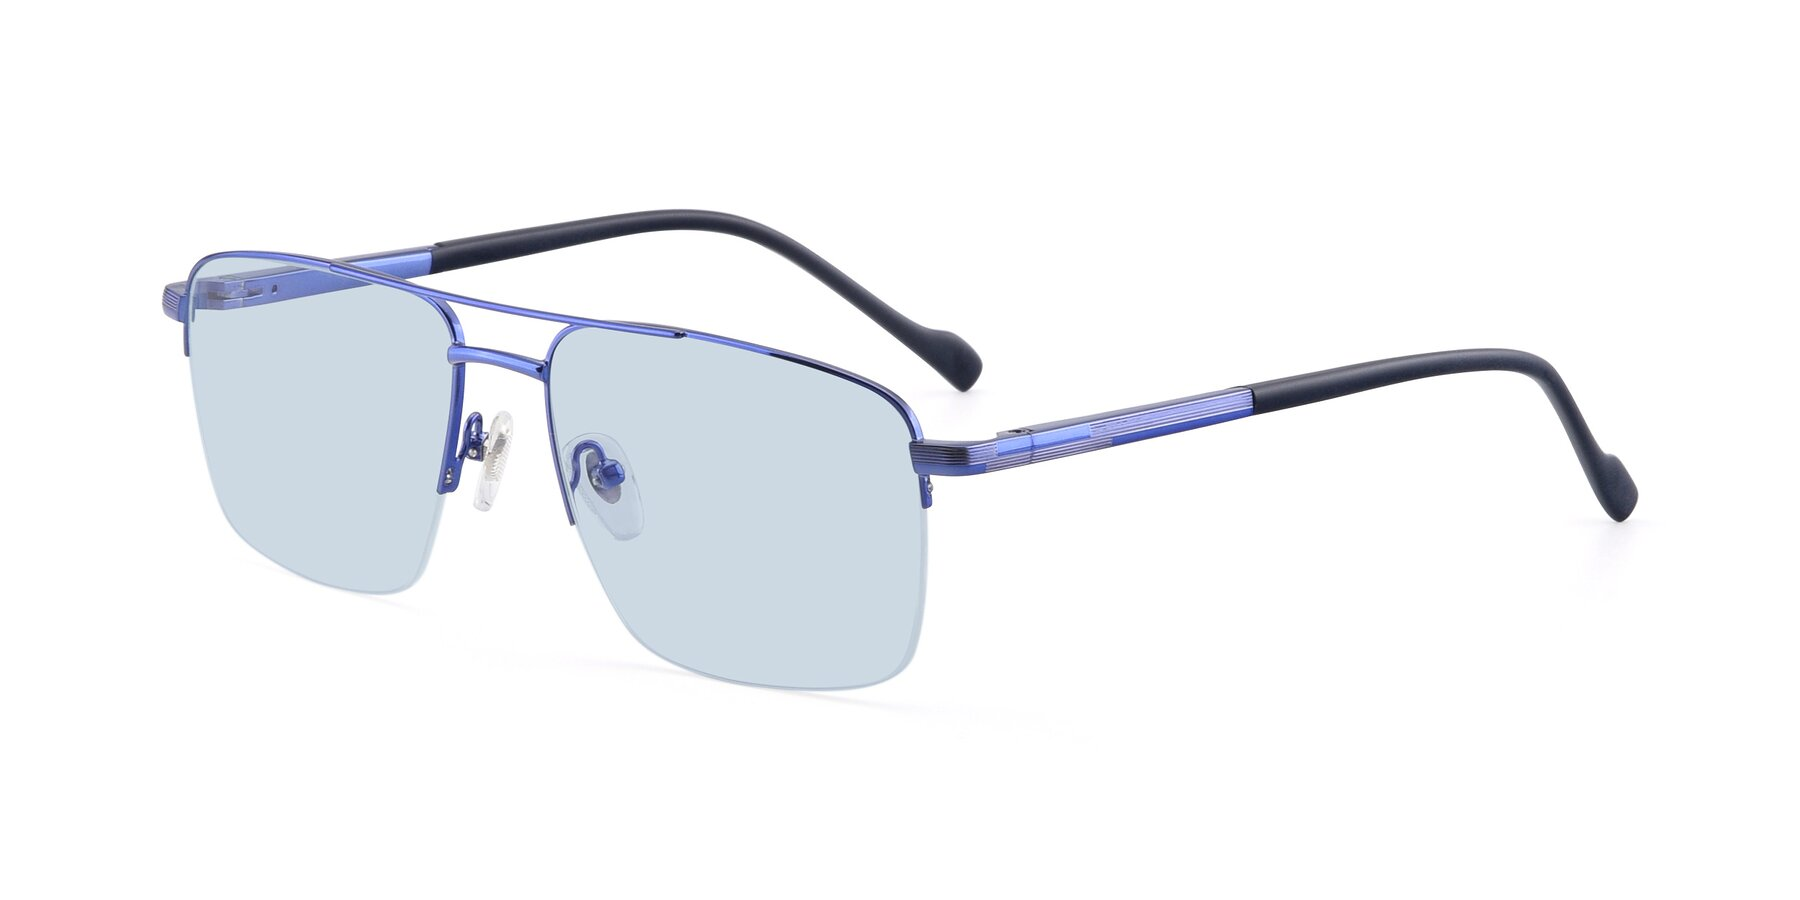 Angle of 19013 in Blue with Light Blue Tinted Lenses